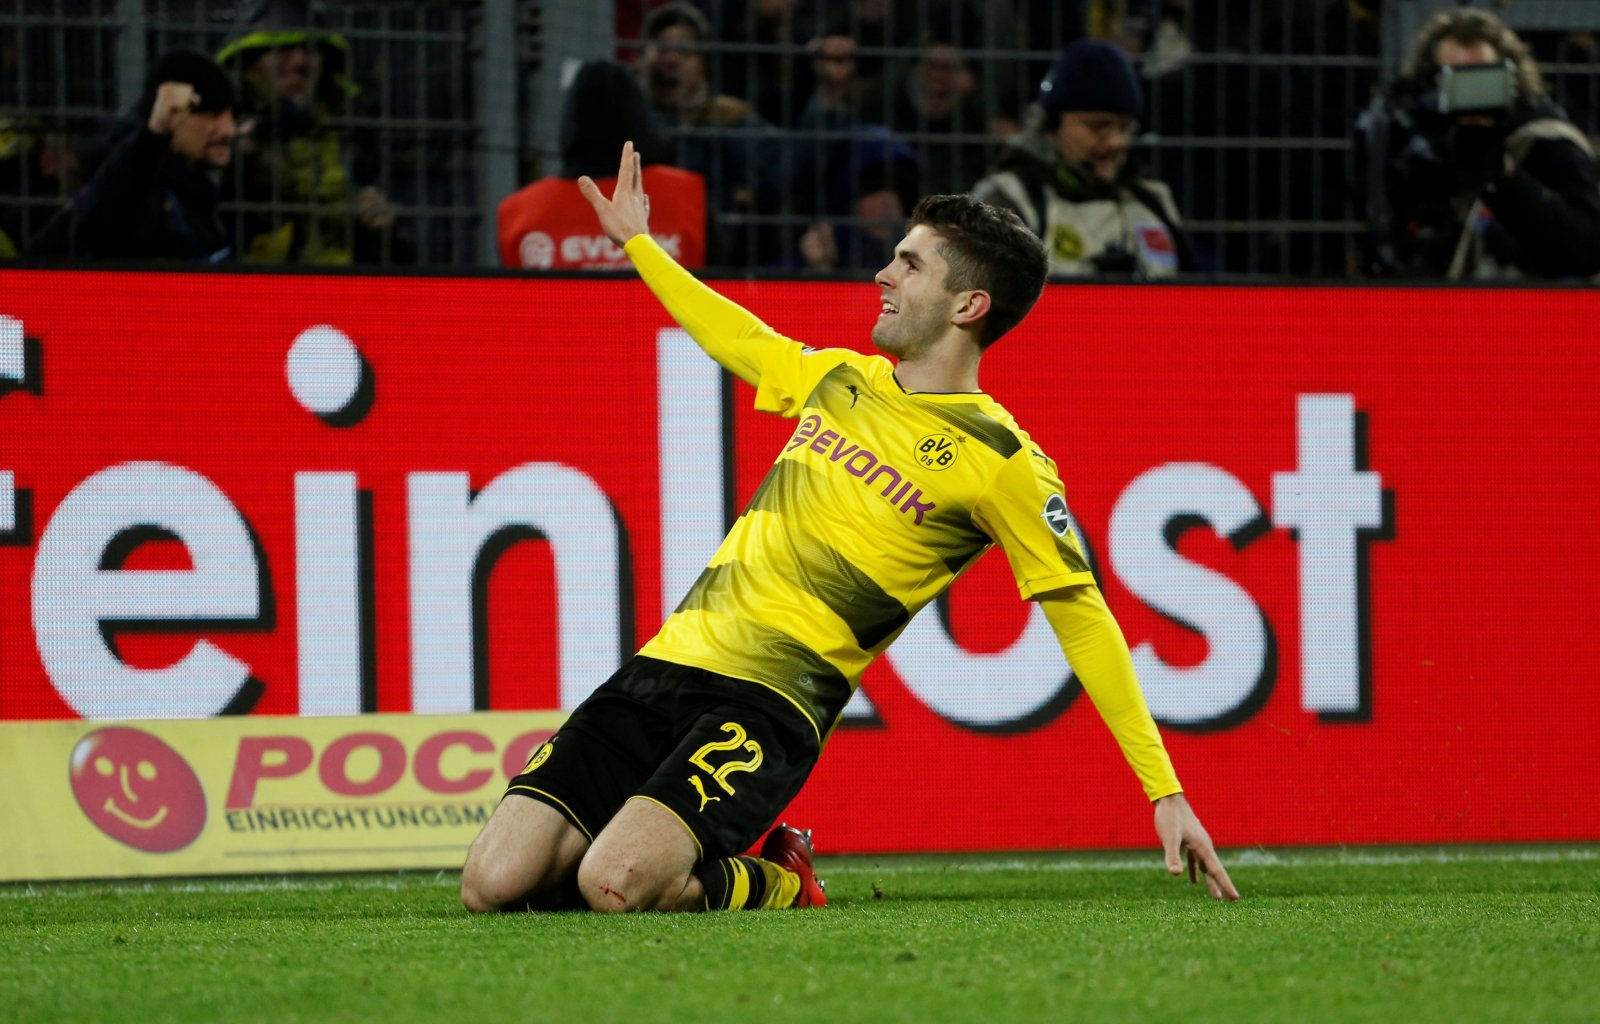 Pulisic would be a wonderful addition for Manchester City in more ways than one